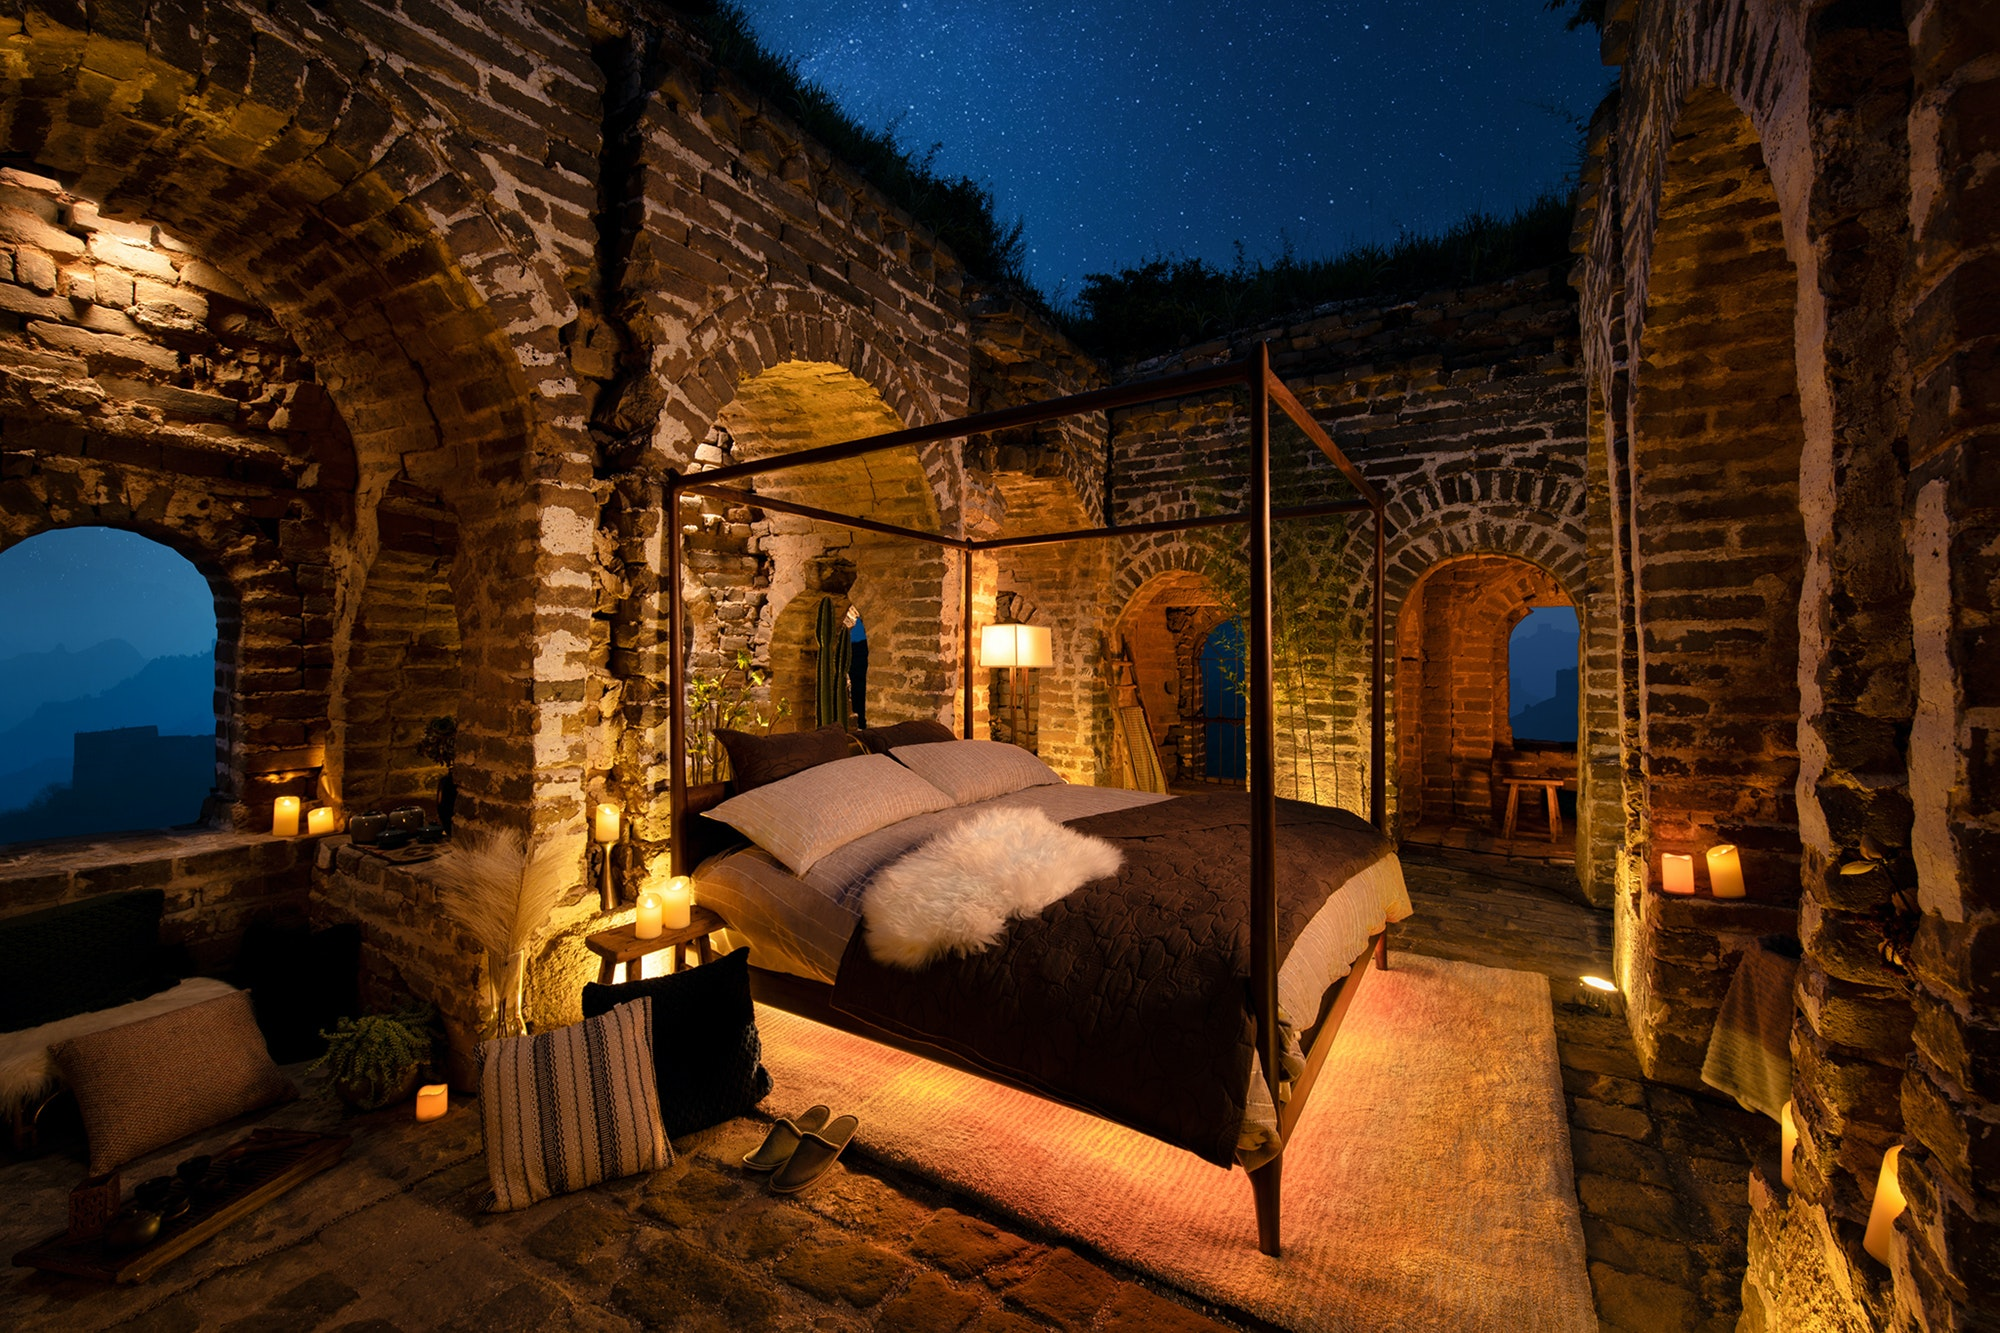 You can sleep under the stars at this glamping site inside a Great Wall watchtower.